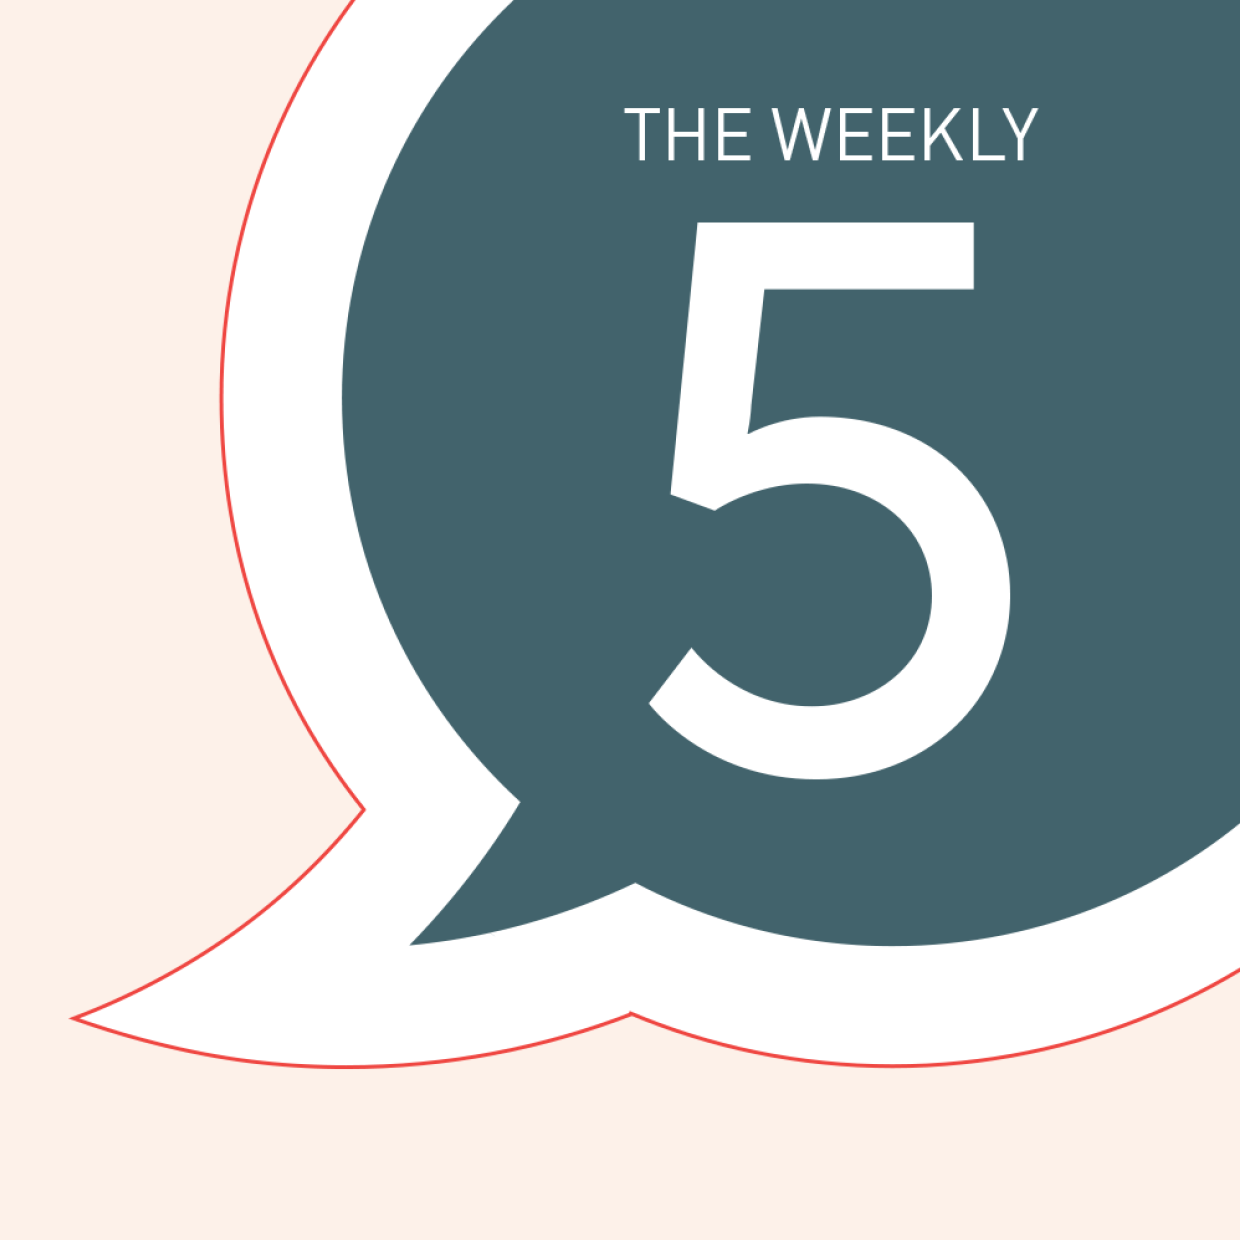 The Economics Weekly 5 catch up